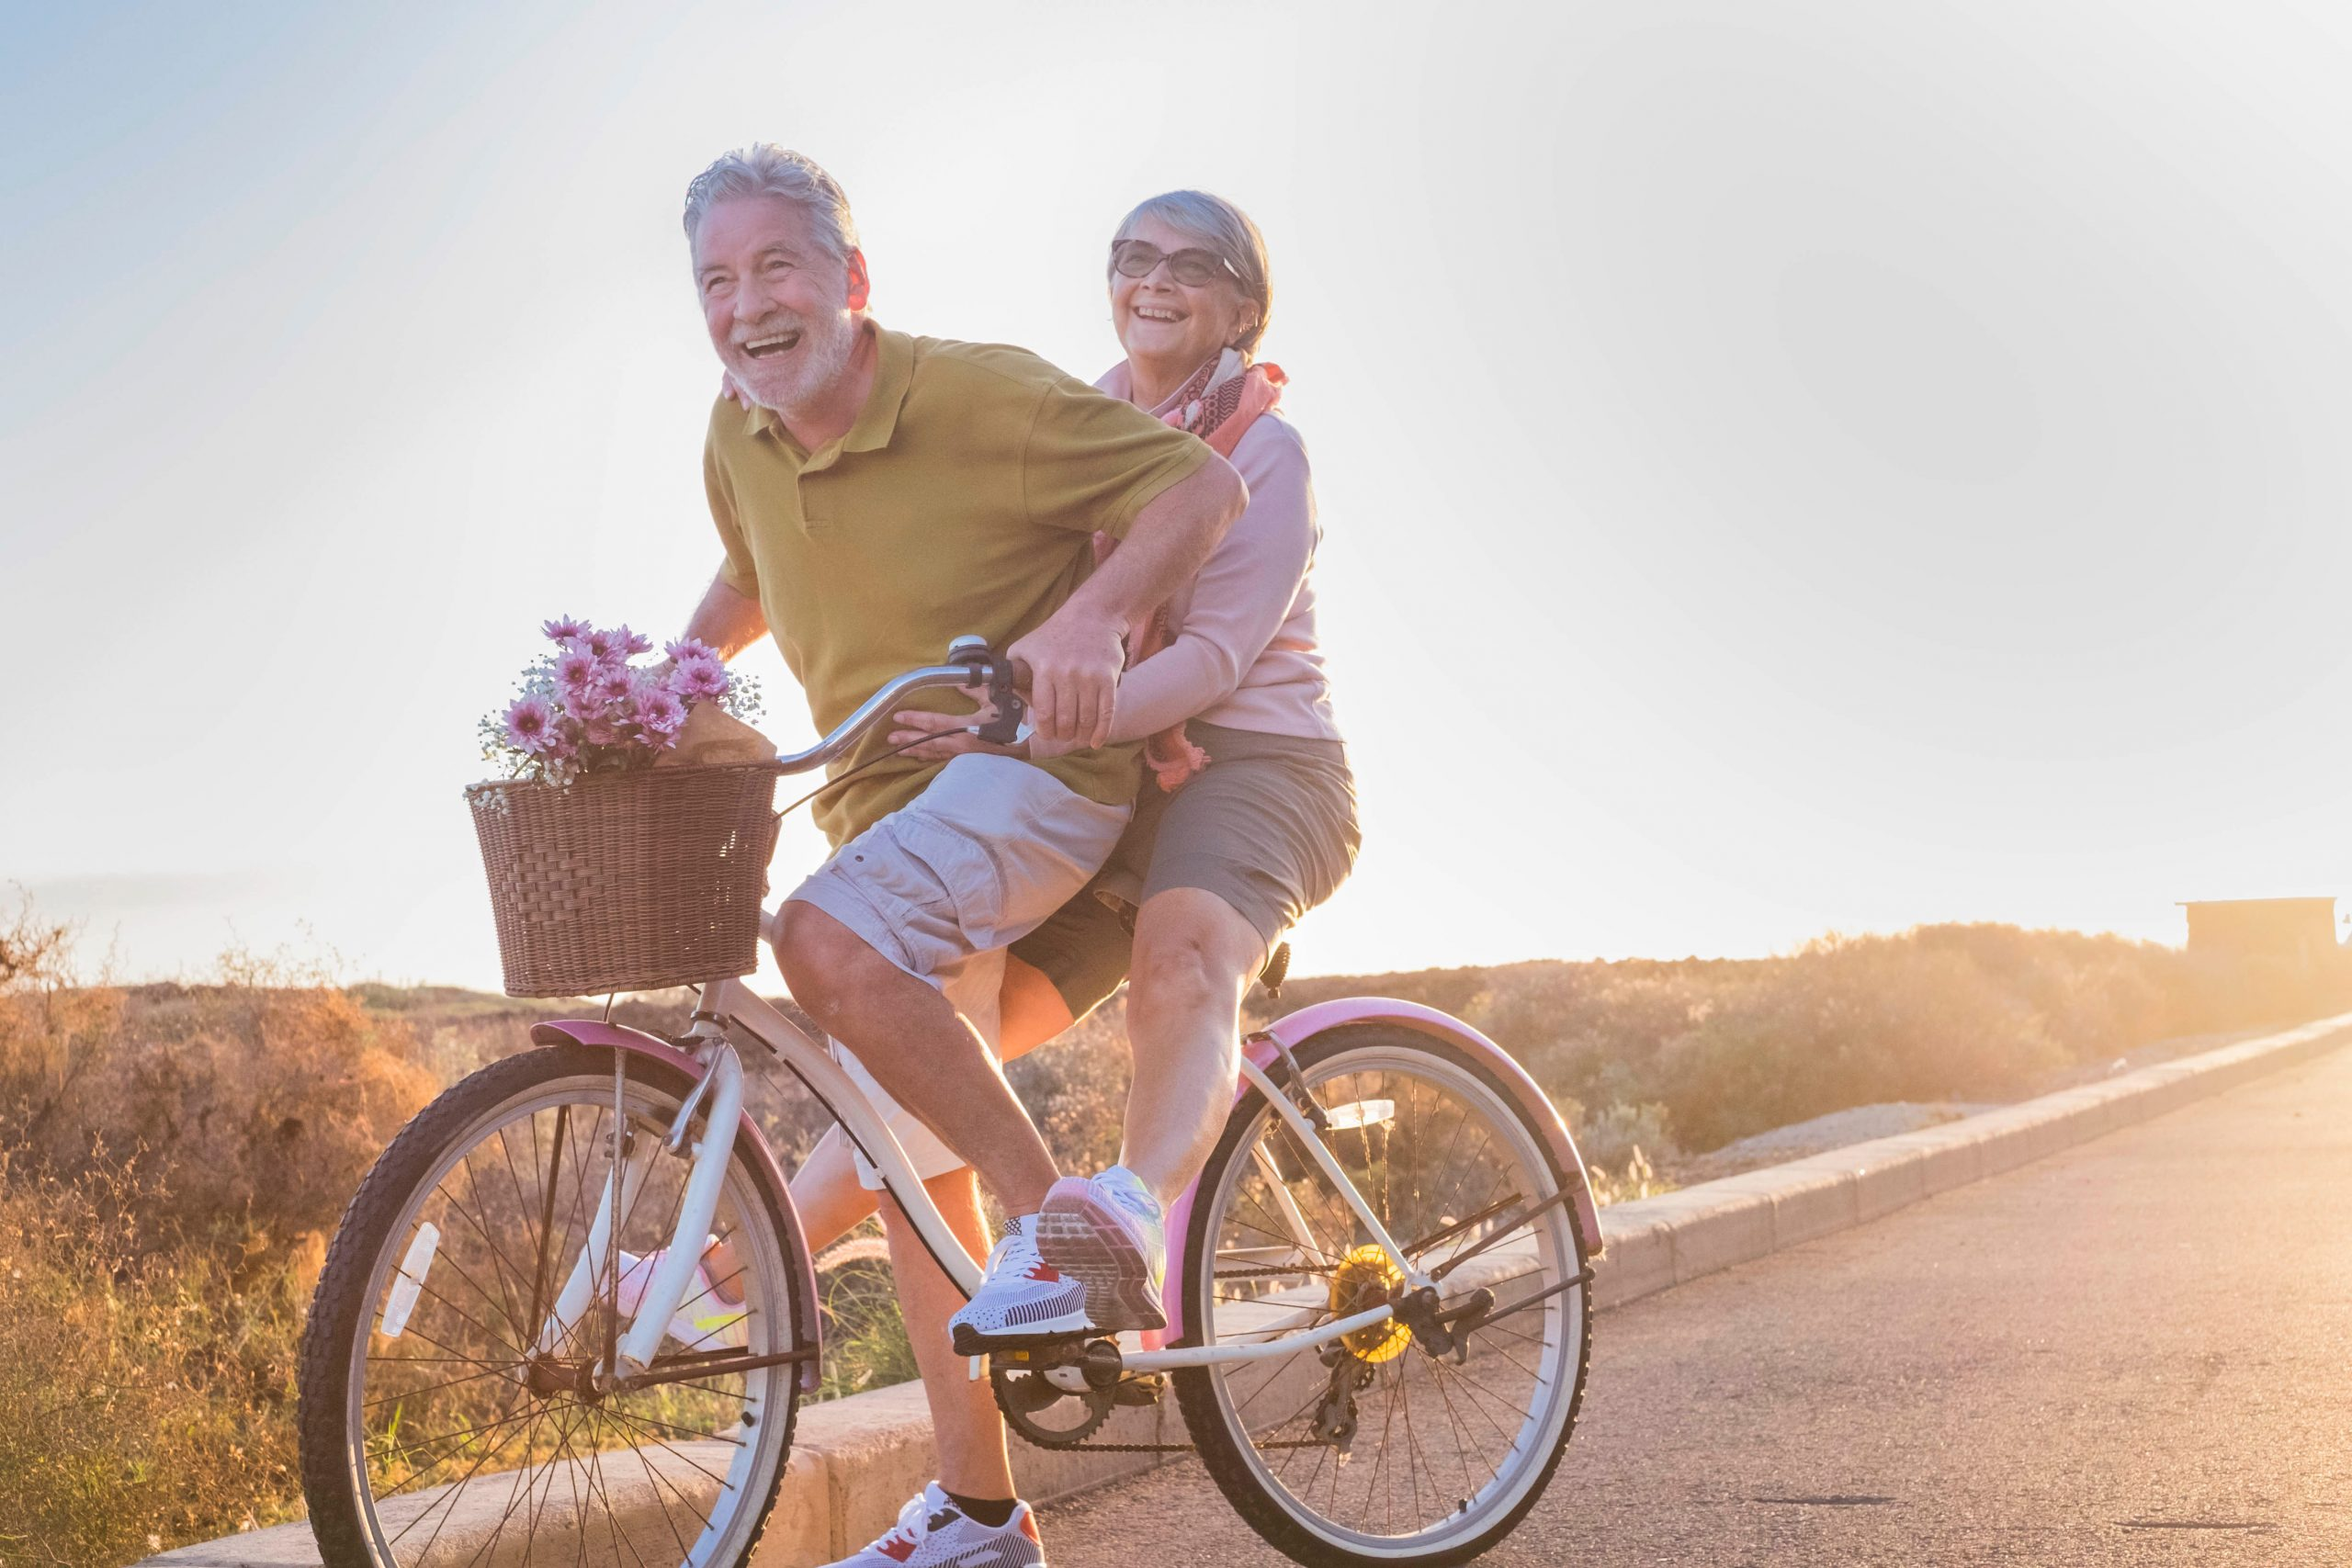 happy-elder-couple-on-a-bike-for-two-people